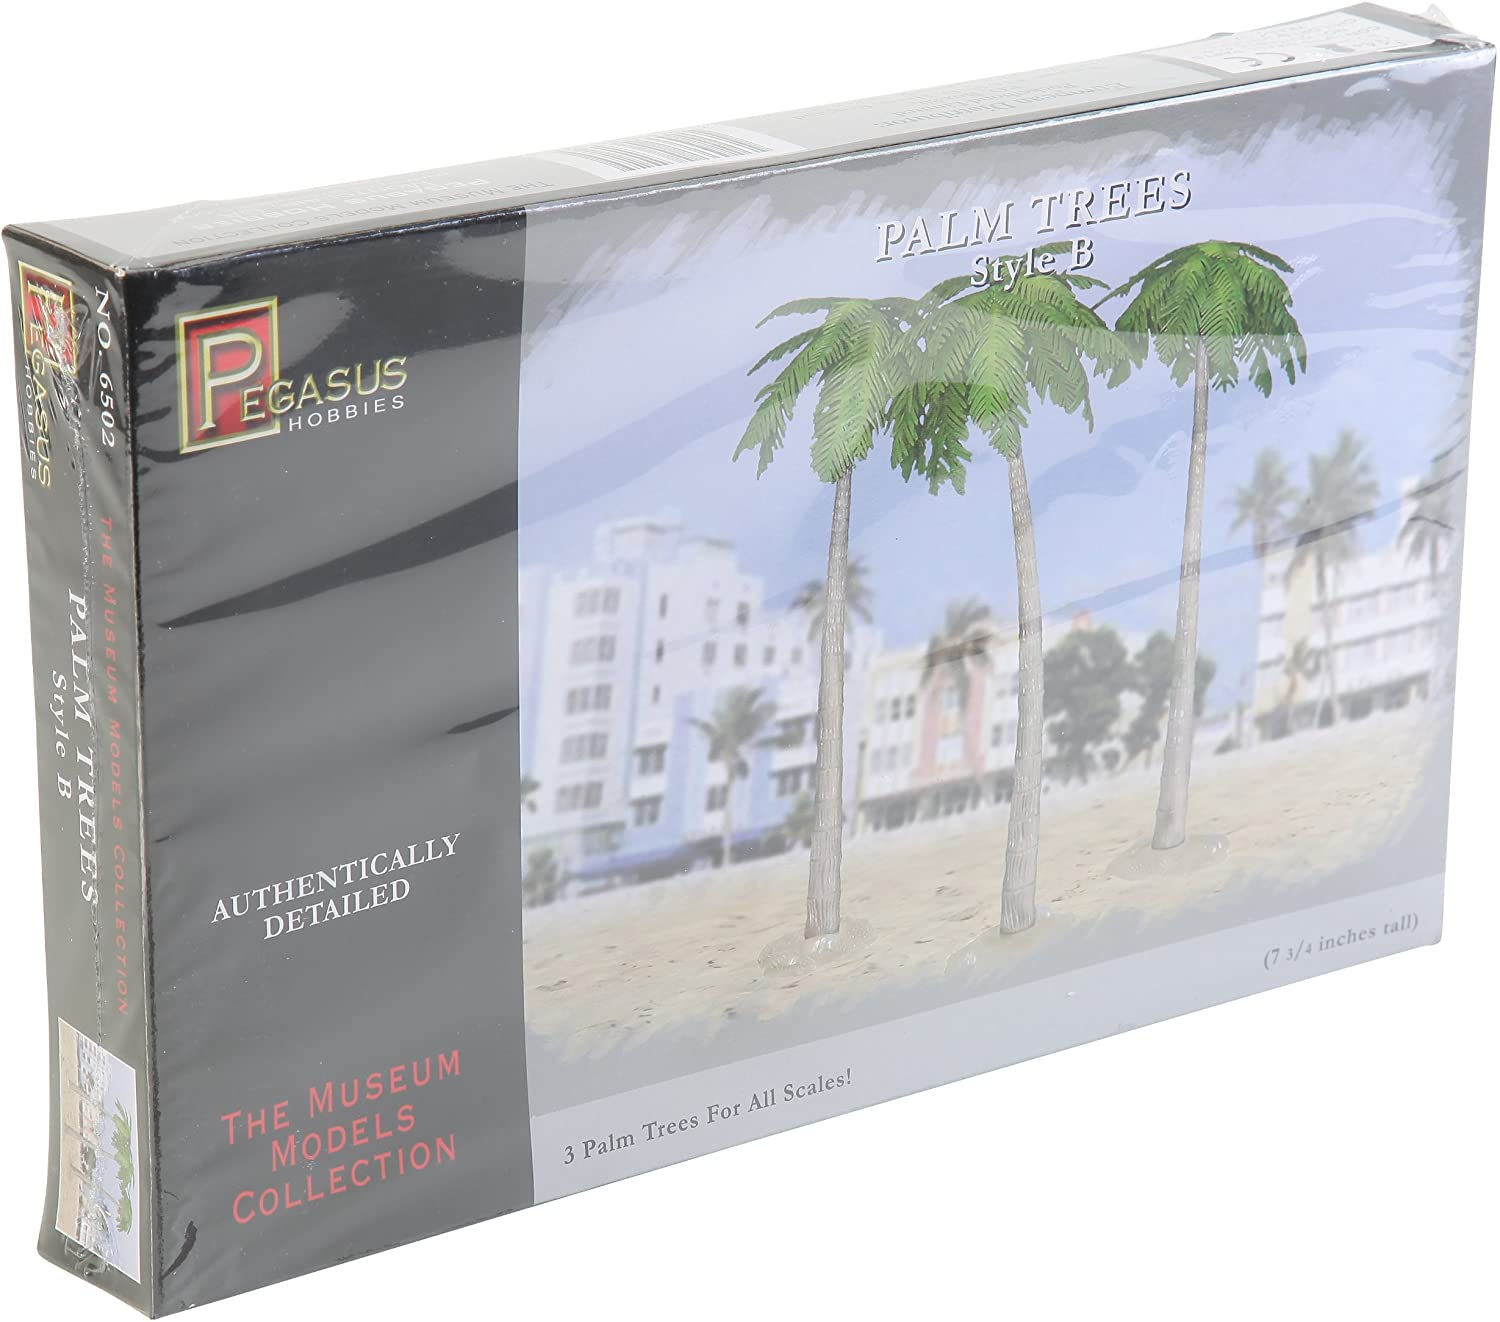 Palm Trees Style B (Pegasus) 1:72 scale